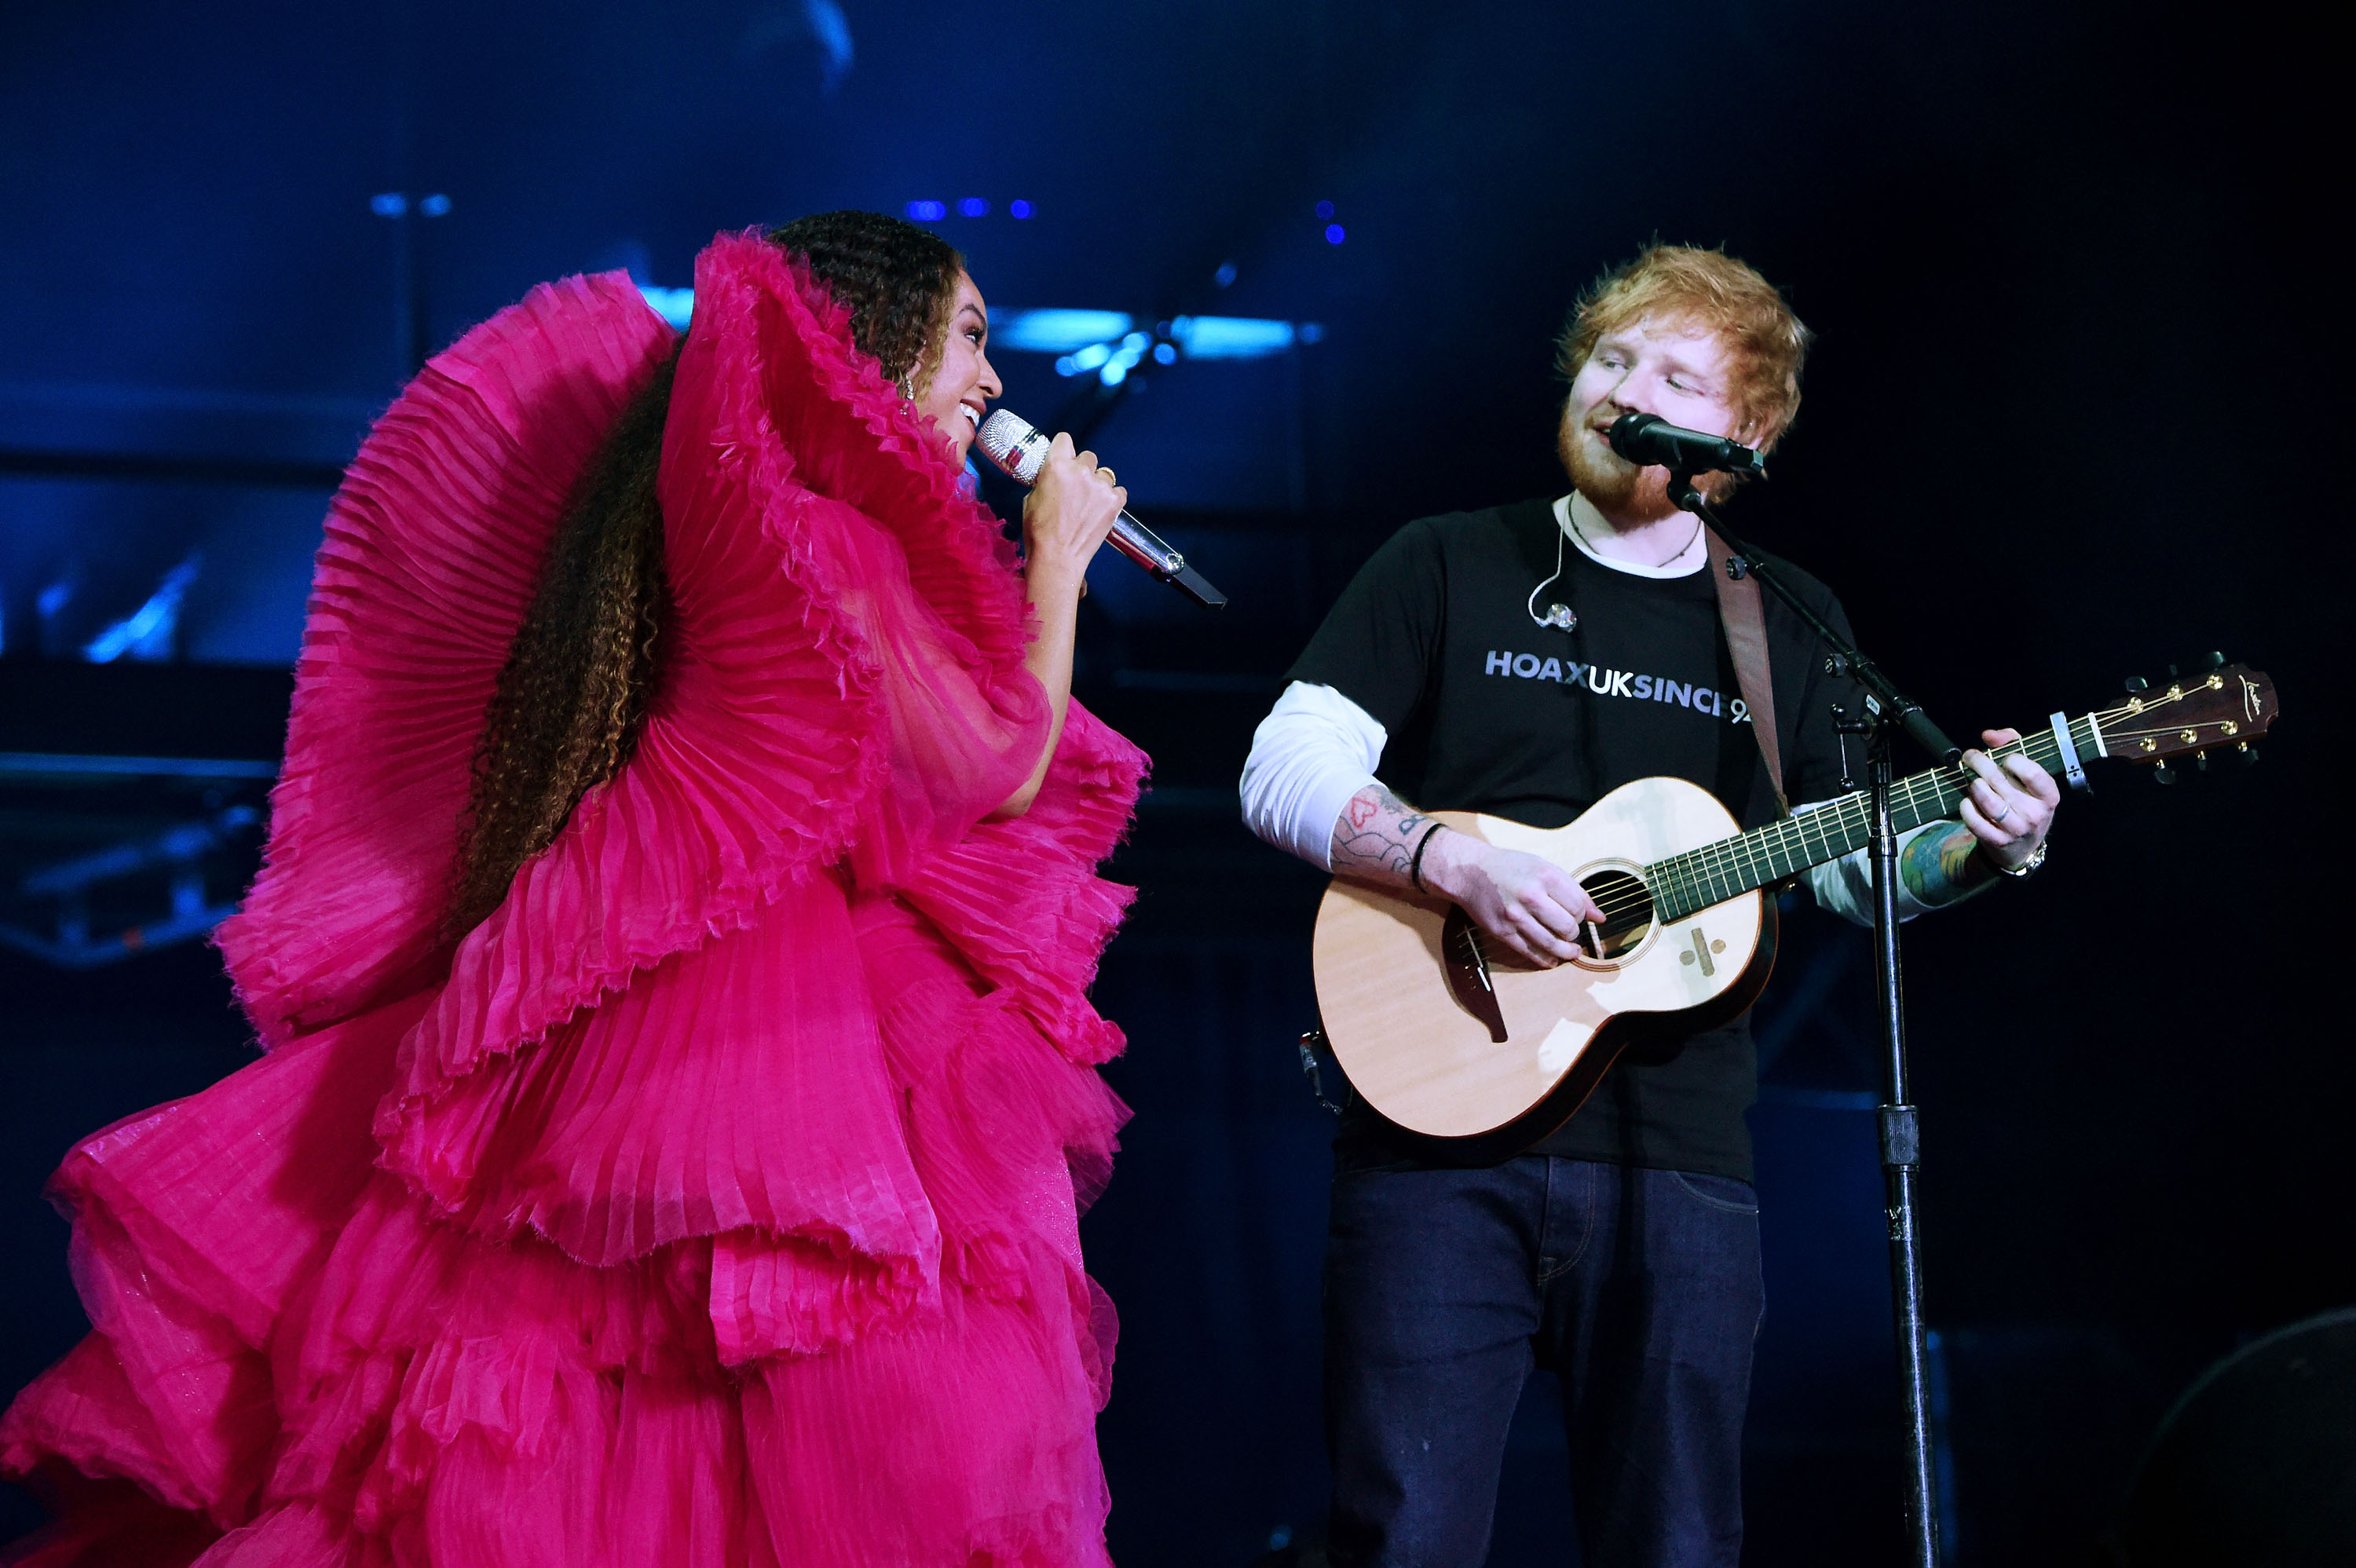 People are angry Ed Sheeran wore a t-shirt while Beyonce wore couture during their Global Citizen performance